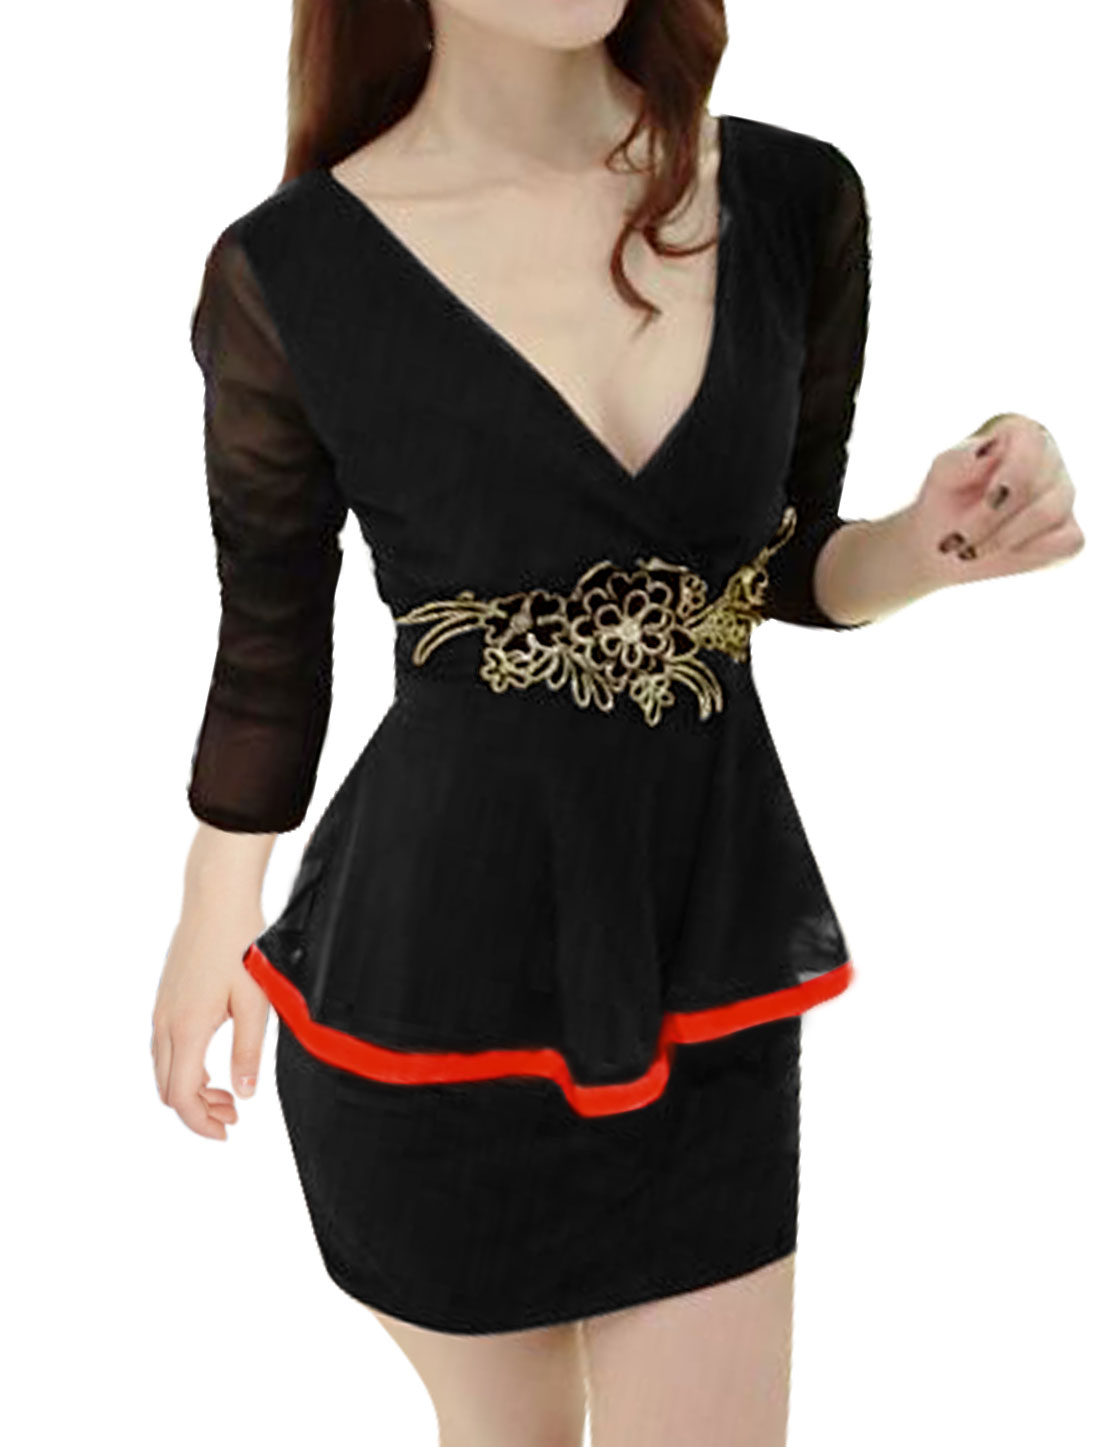 Woman Crossover V Neck Flower Applique Mesh Peplum Dress Black S